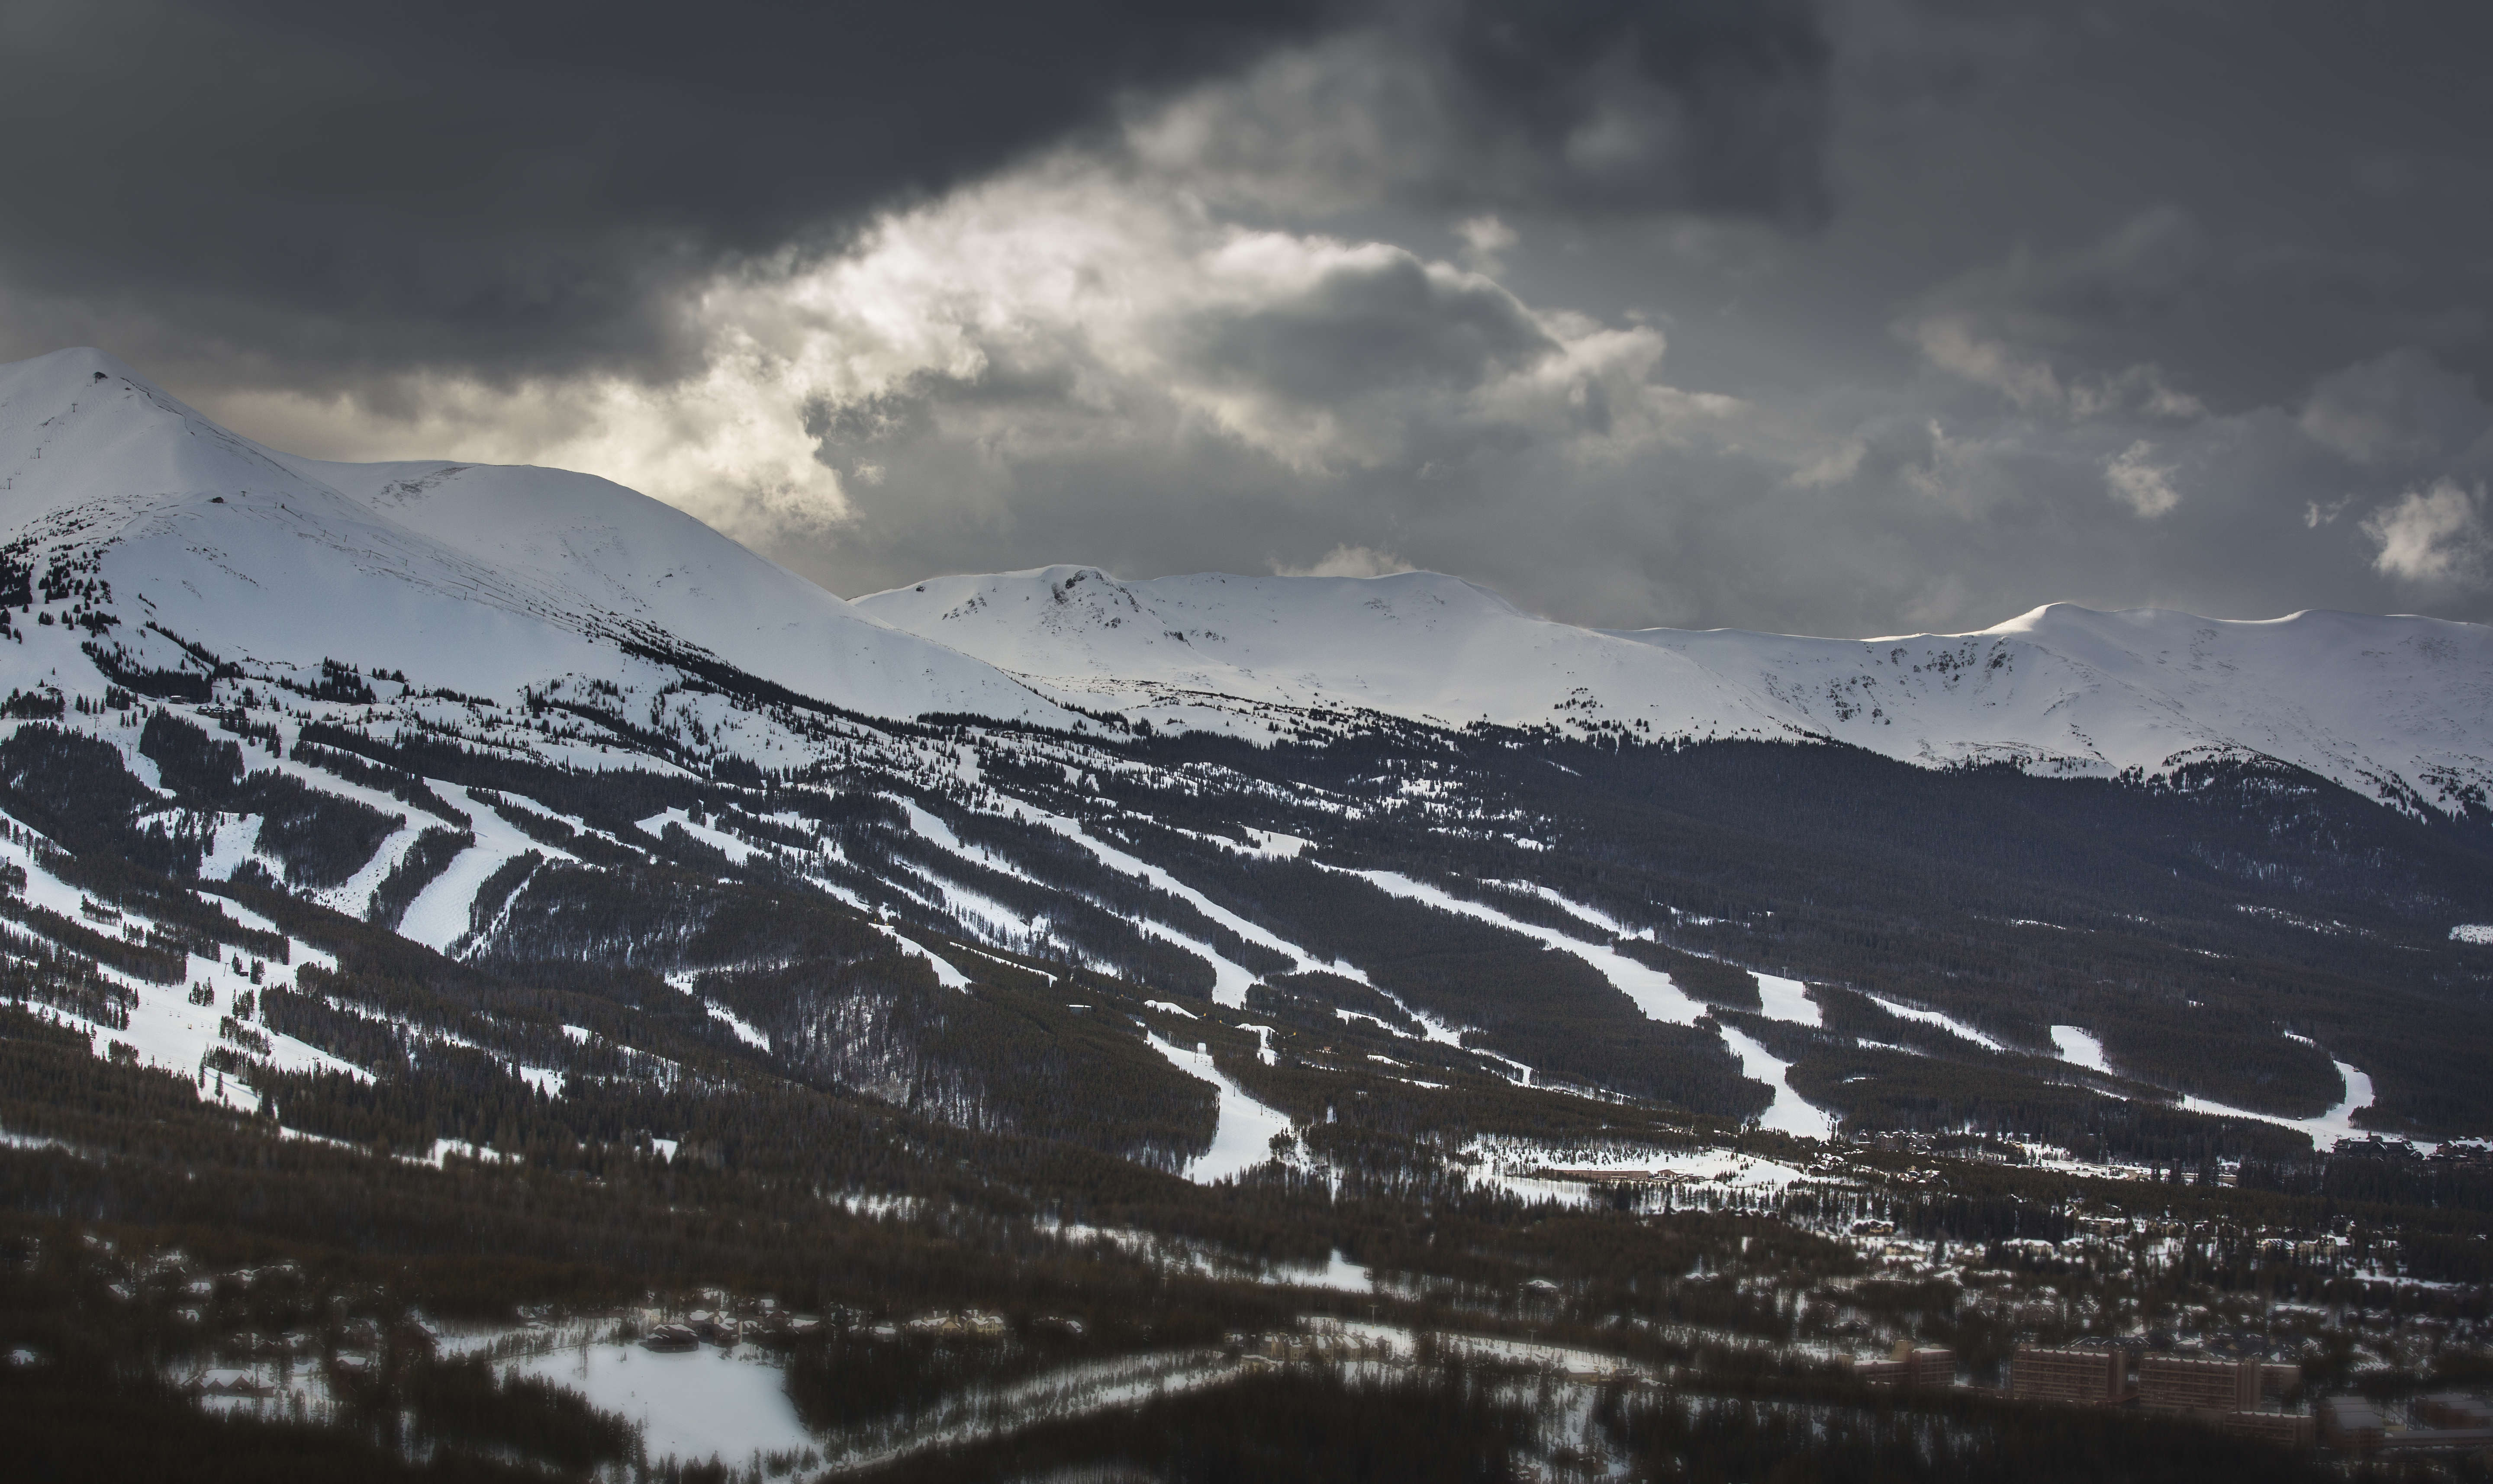 A panorama of the town of Breckenridge